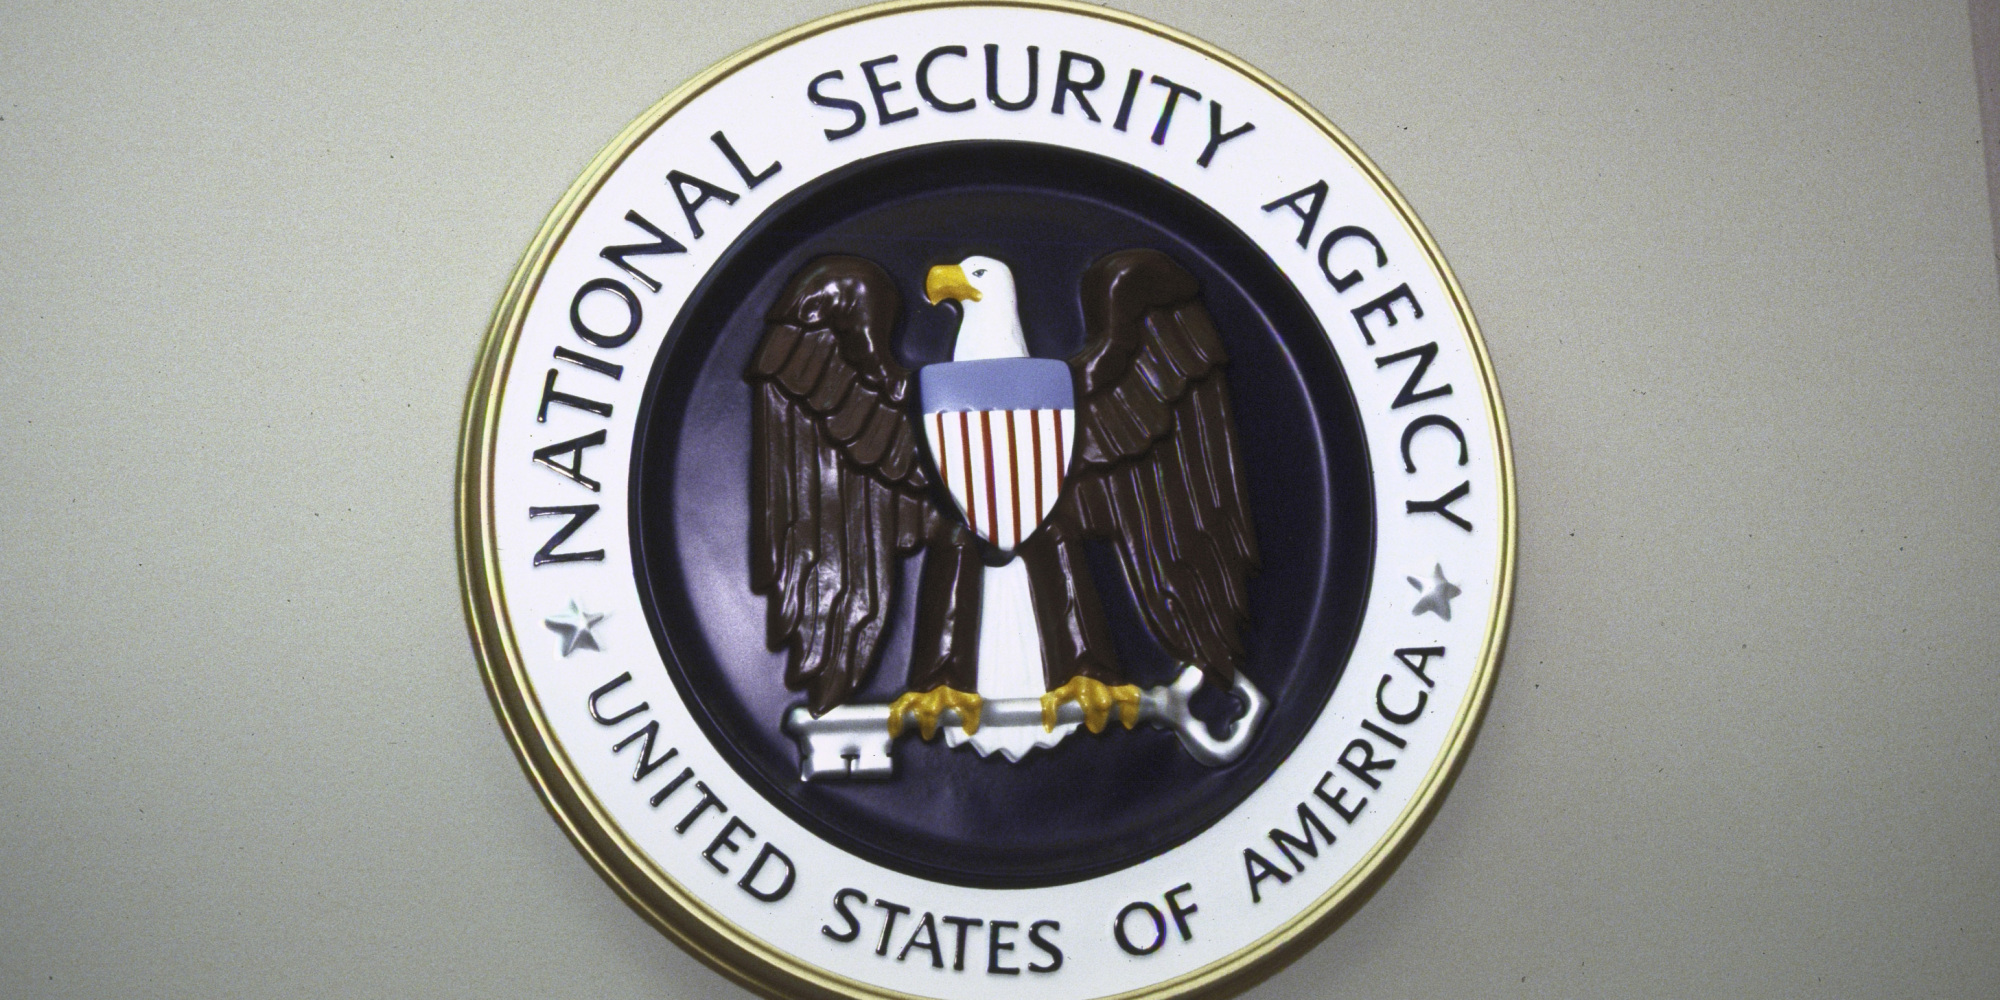 nsa does not deny spying on congress members have same